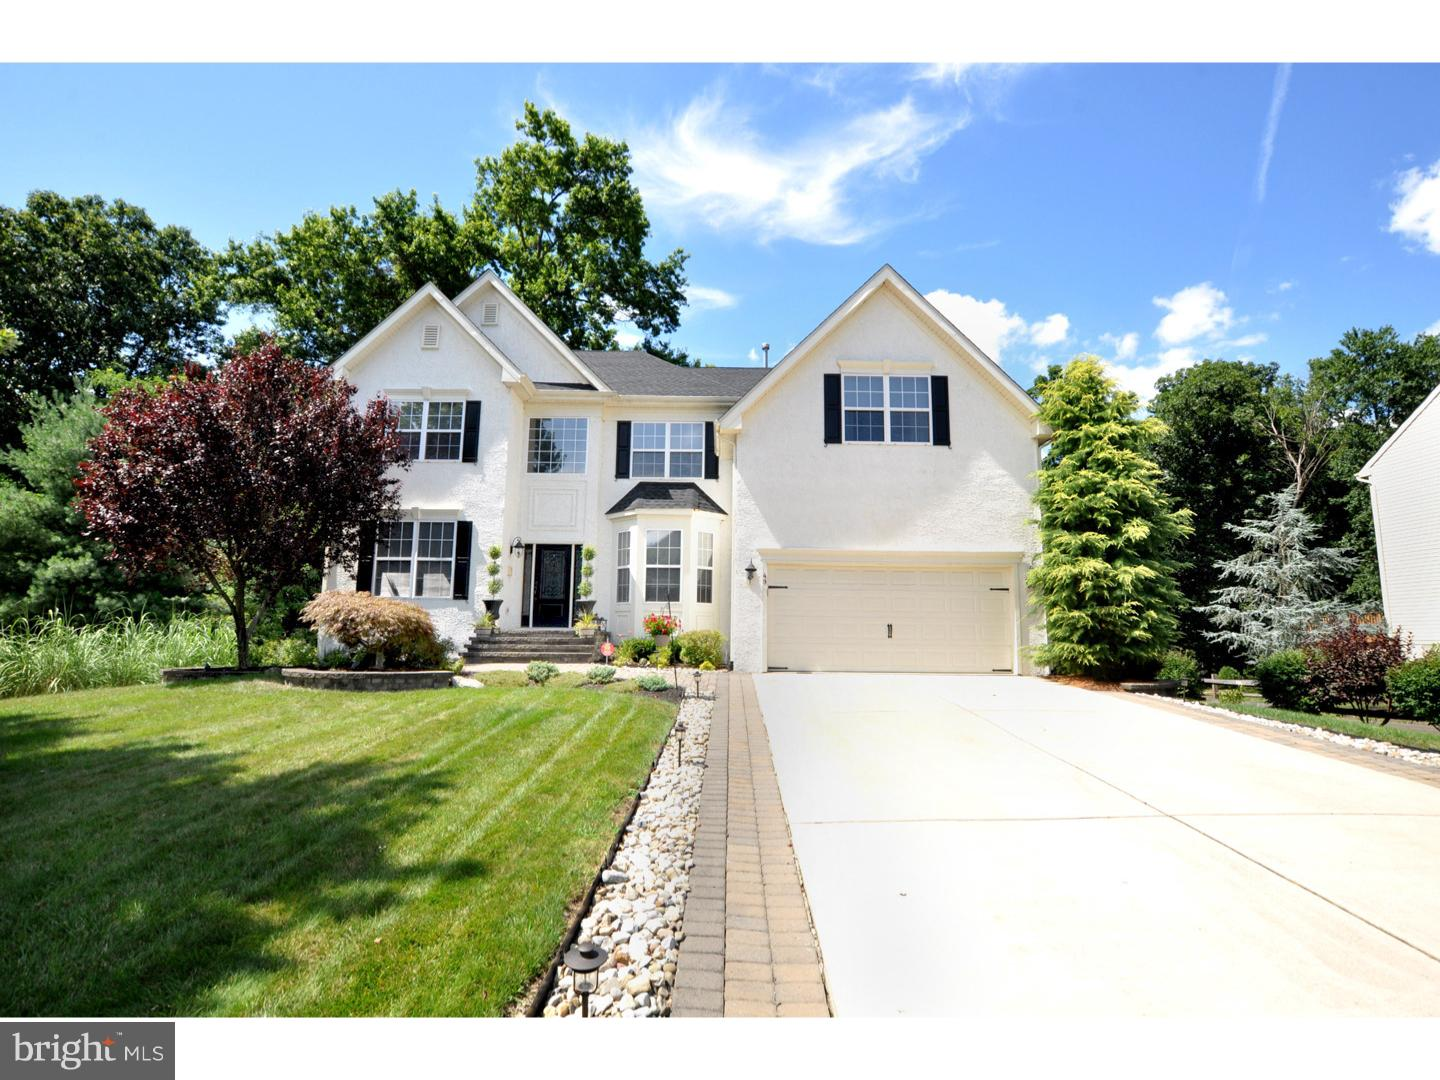 Single Family Home for Sale at 49 NORMANDY Road Evesham Twp, New Jersey 08053 United States